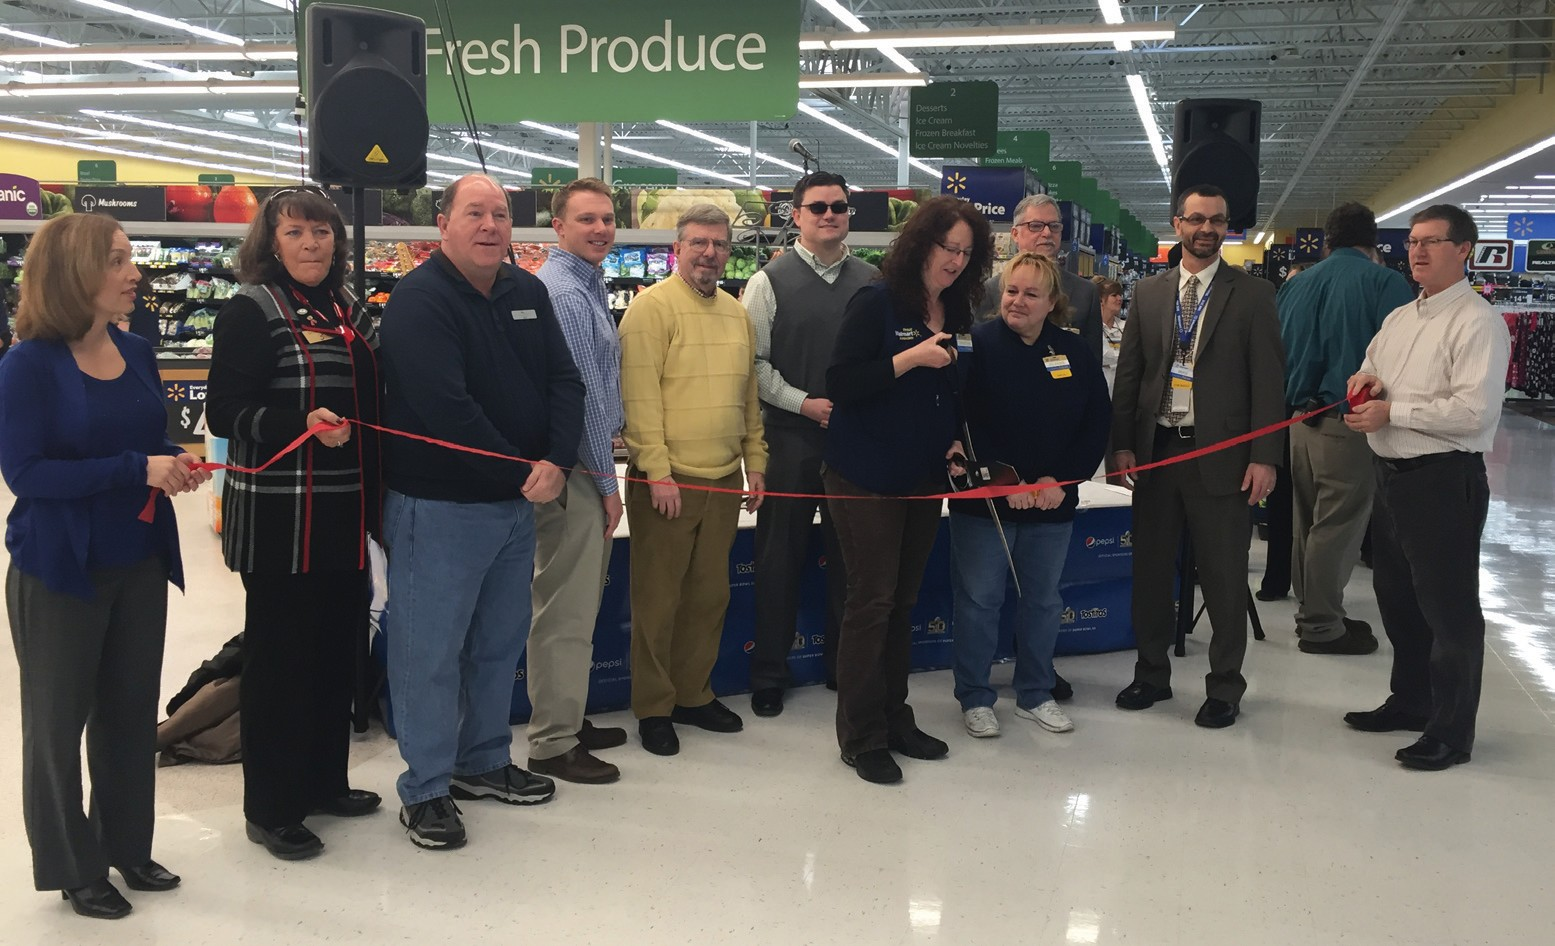 Walmart employee Christine Morin cuts a ribbon this morning at the Biddeford store in celebration of the completion of a remodel that began in September. With Morin are other Walmart employees as well as representatives from the Biddeford + Saco Chamber of Commerce + Industry.